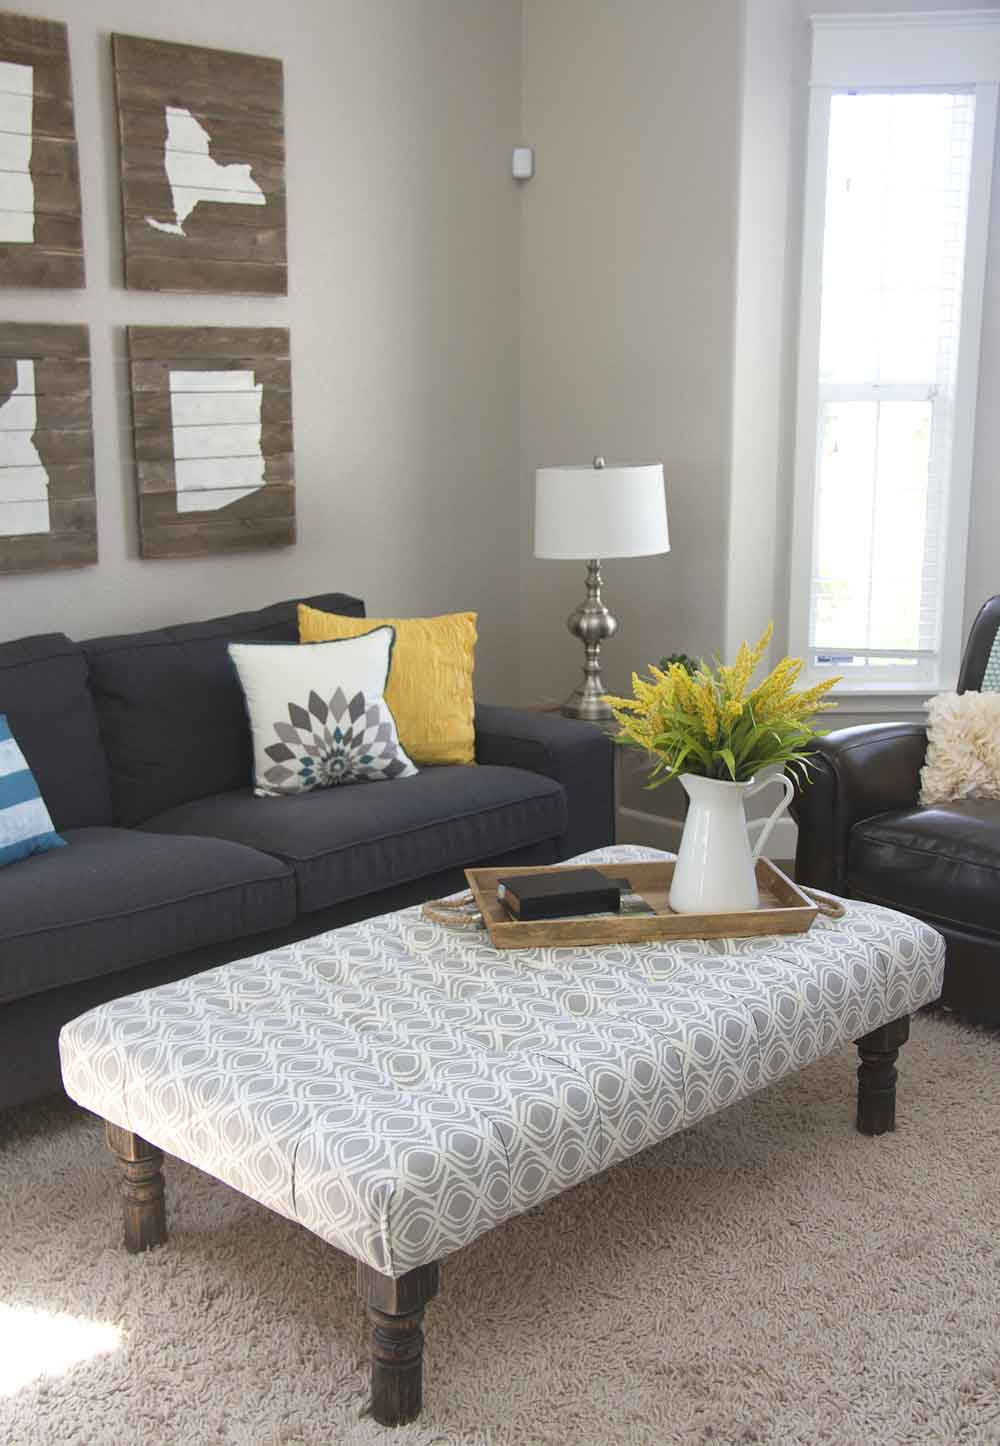 Easy And Quick Guideline To Make Padded Coffee Table Covers | Table Covers Depot